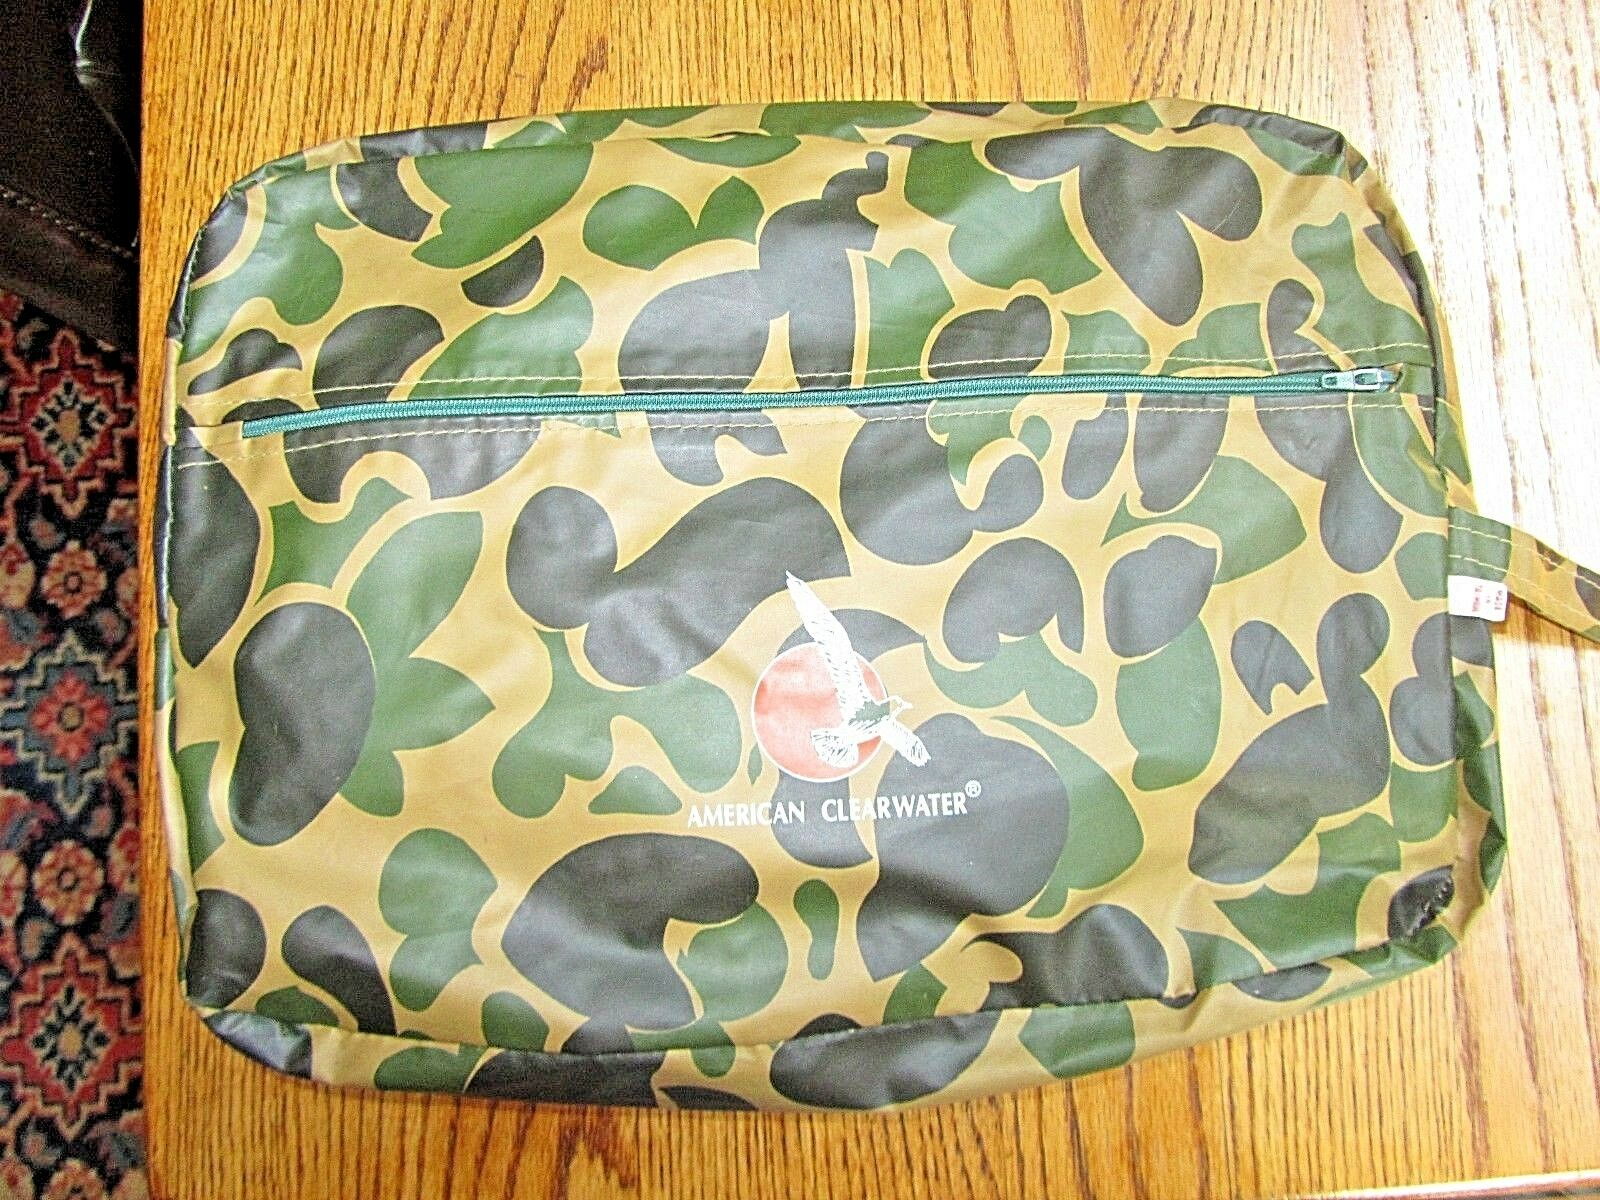 HUNTING CAMOUFLAGE RAIN WEAR GEAR 3 PC SET IN TRAVEL BAG-NEVER USED-LARGE